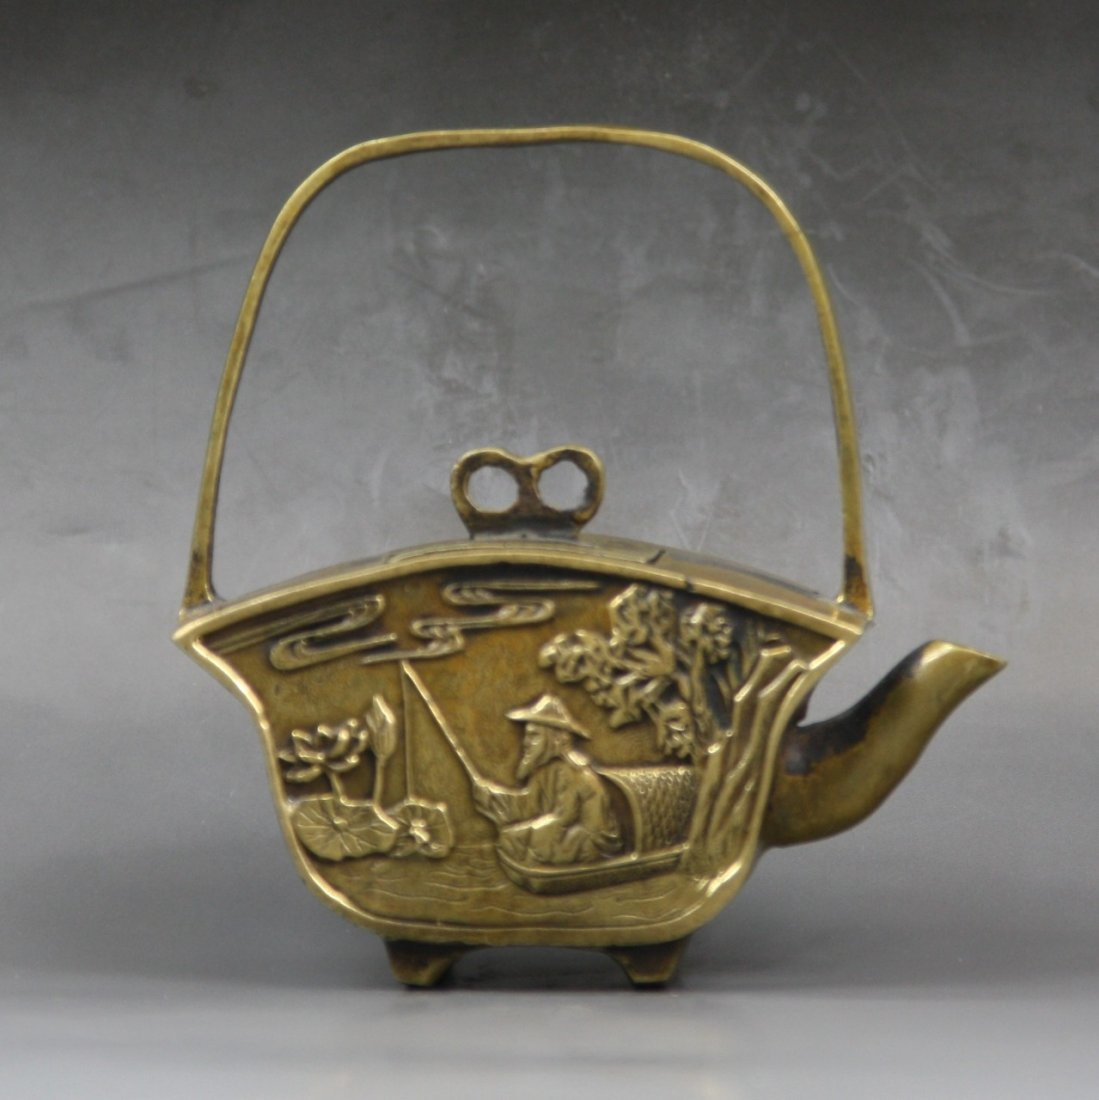 10: A Chinese Antique Brass Teapot